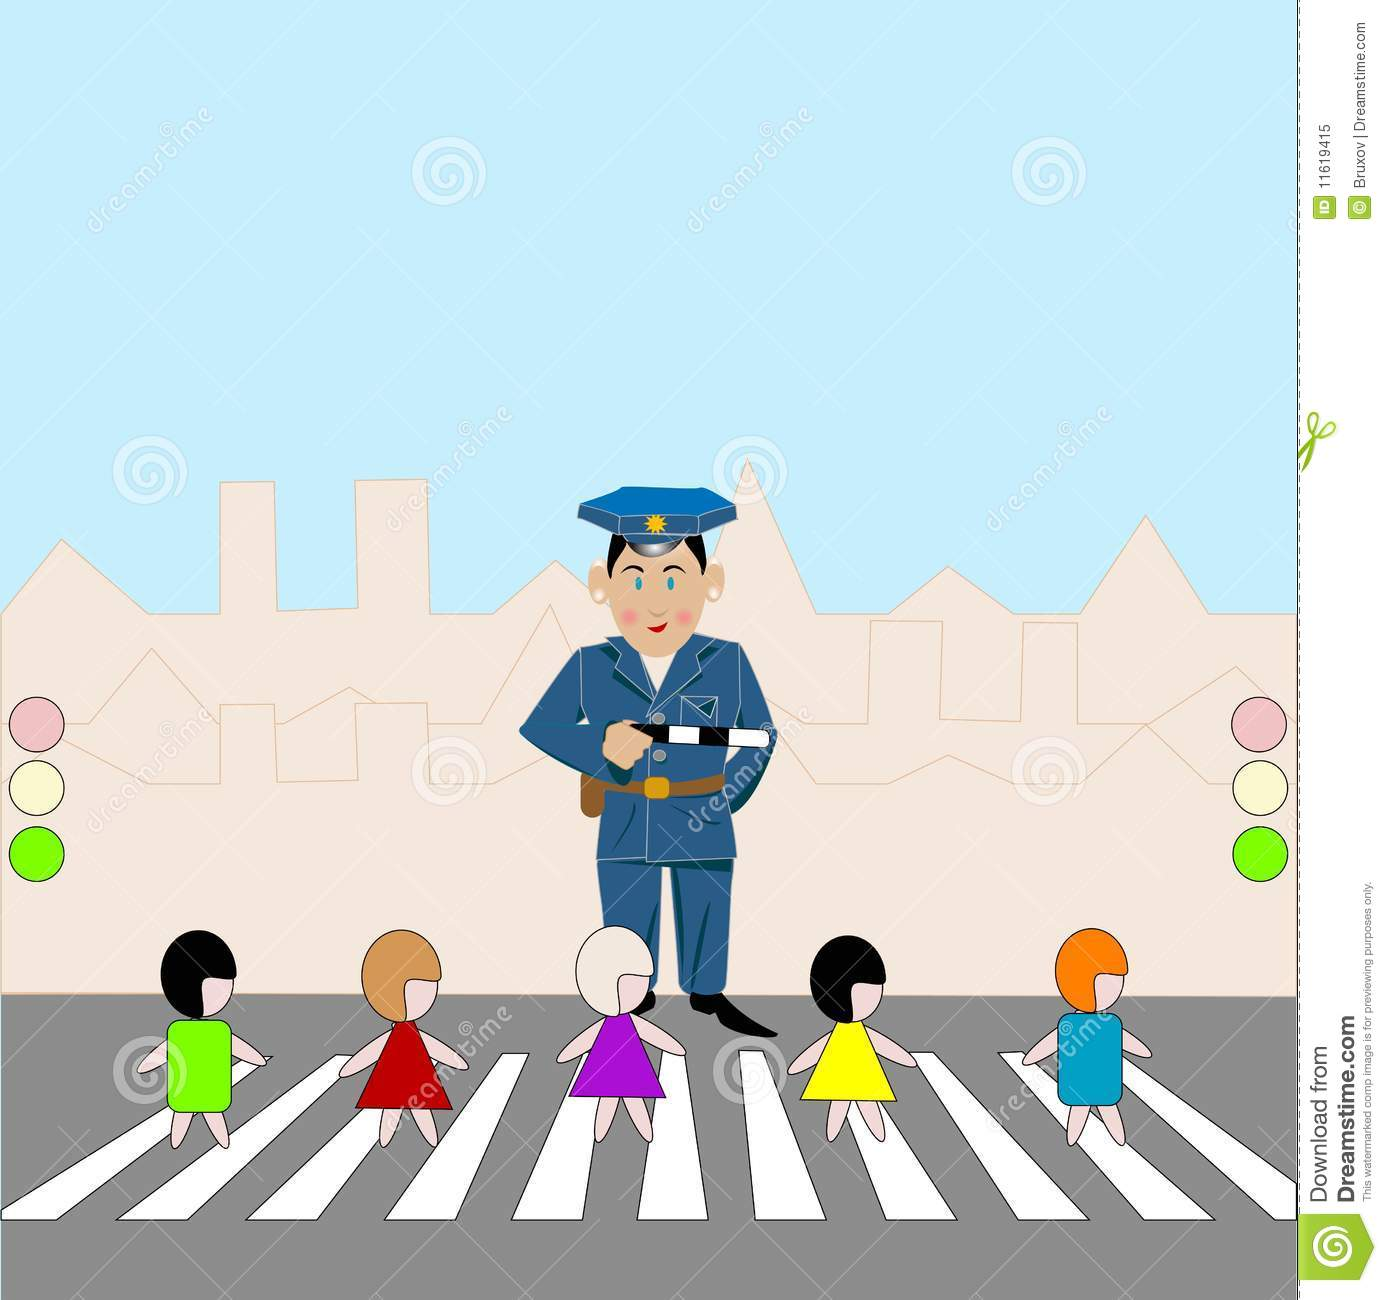 Road Crossing Clipart Pedestrian Crossing Royalty Free Stock Photo Image 11619415